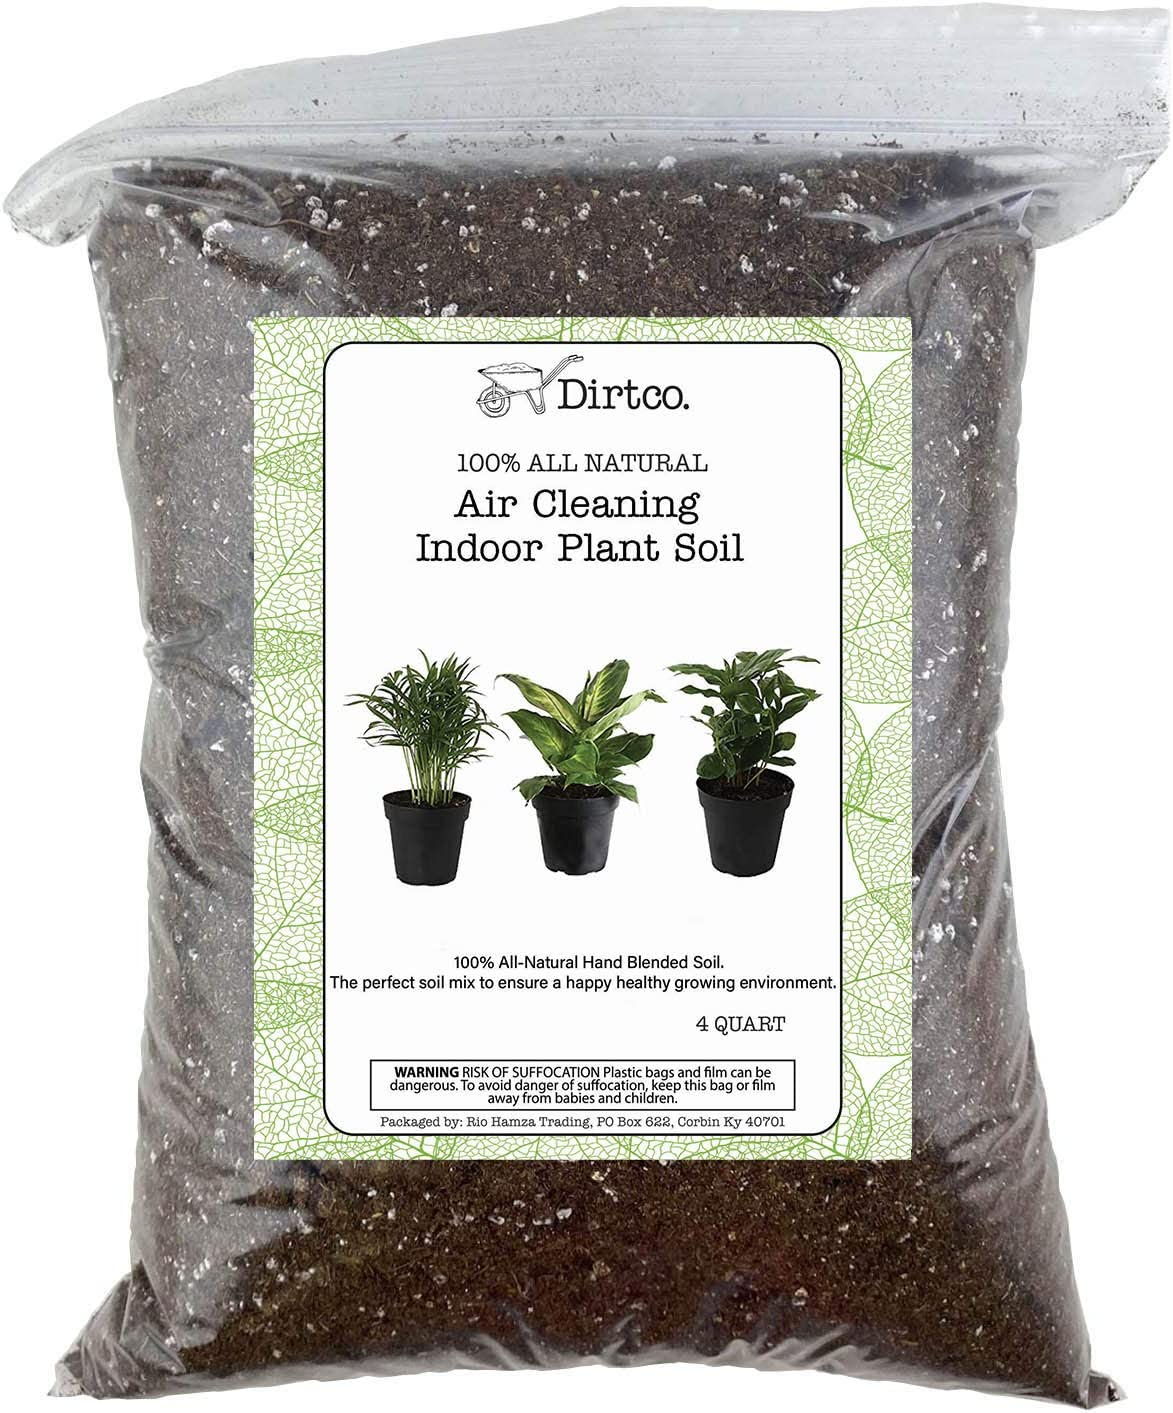 Air Cleaning Indoor Plant Soil Mixture, Gardening Soil Amendment and Clean Air Plant Soil Media, 4qt